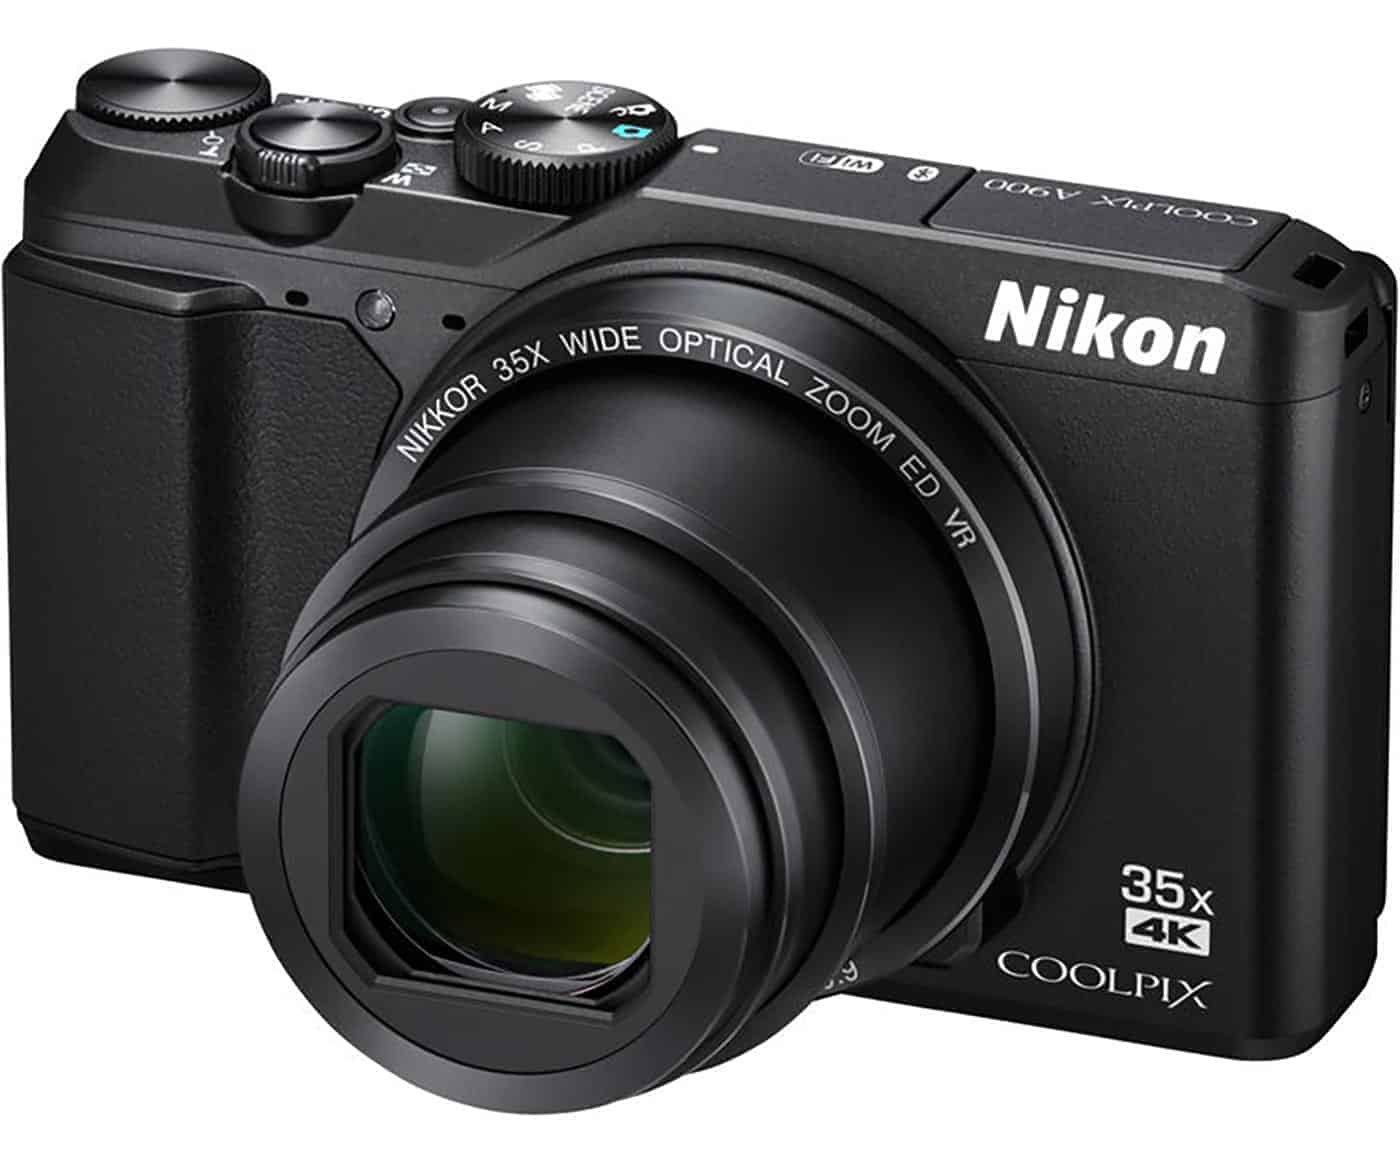 One of the best compact cameras under $300: the Nikon CoolPix A900